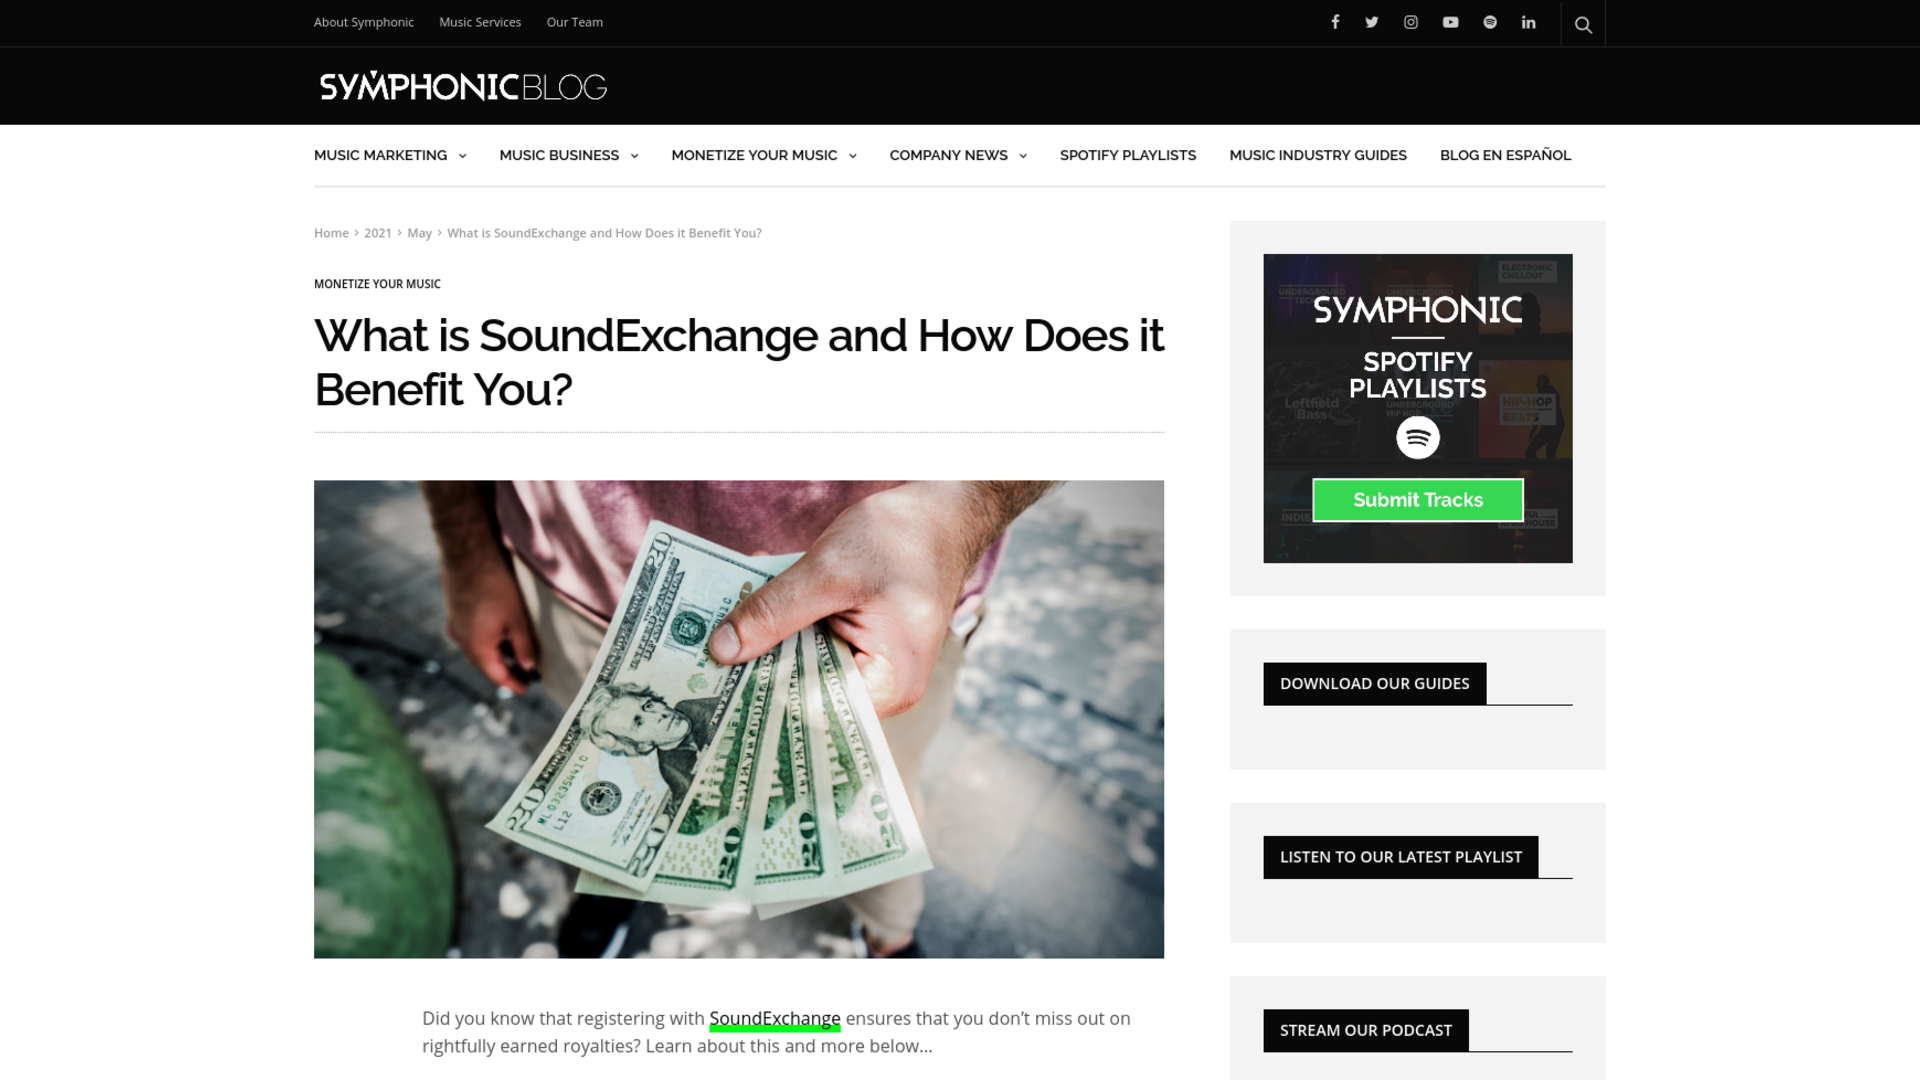 Fairness Rocks News What is SoundExchange and How Does it Benefit You?